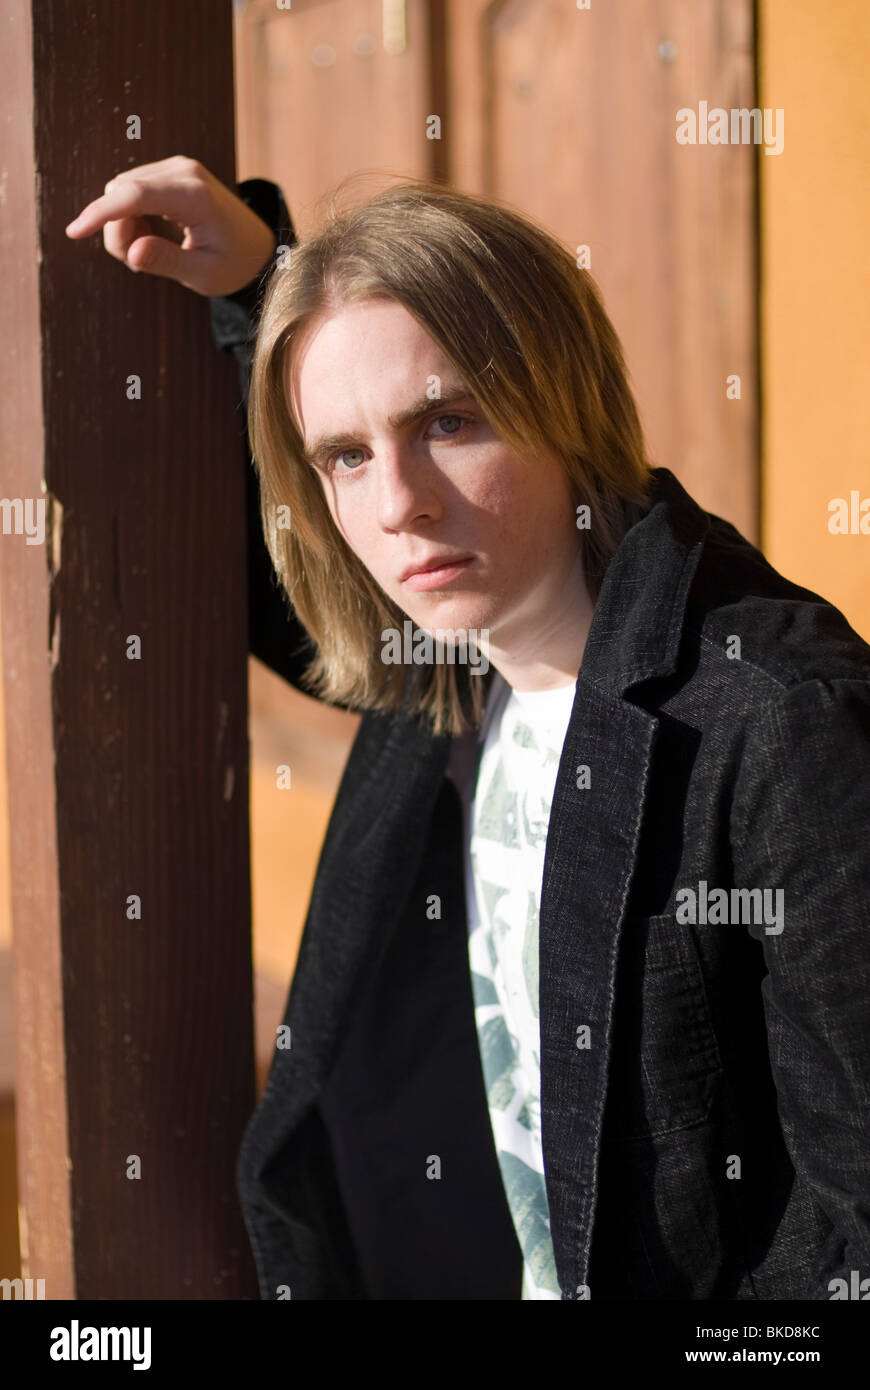 An 18-20 year old man leans on a post looking tough (vertical) - Stock Image